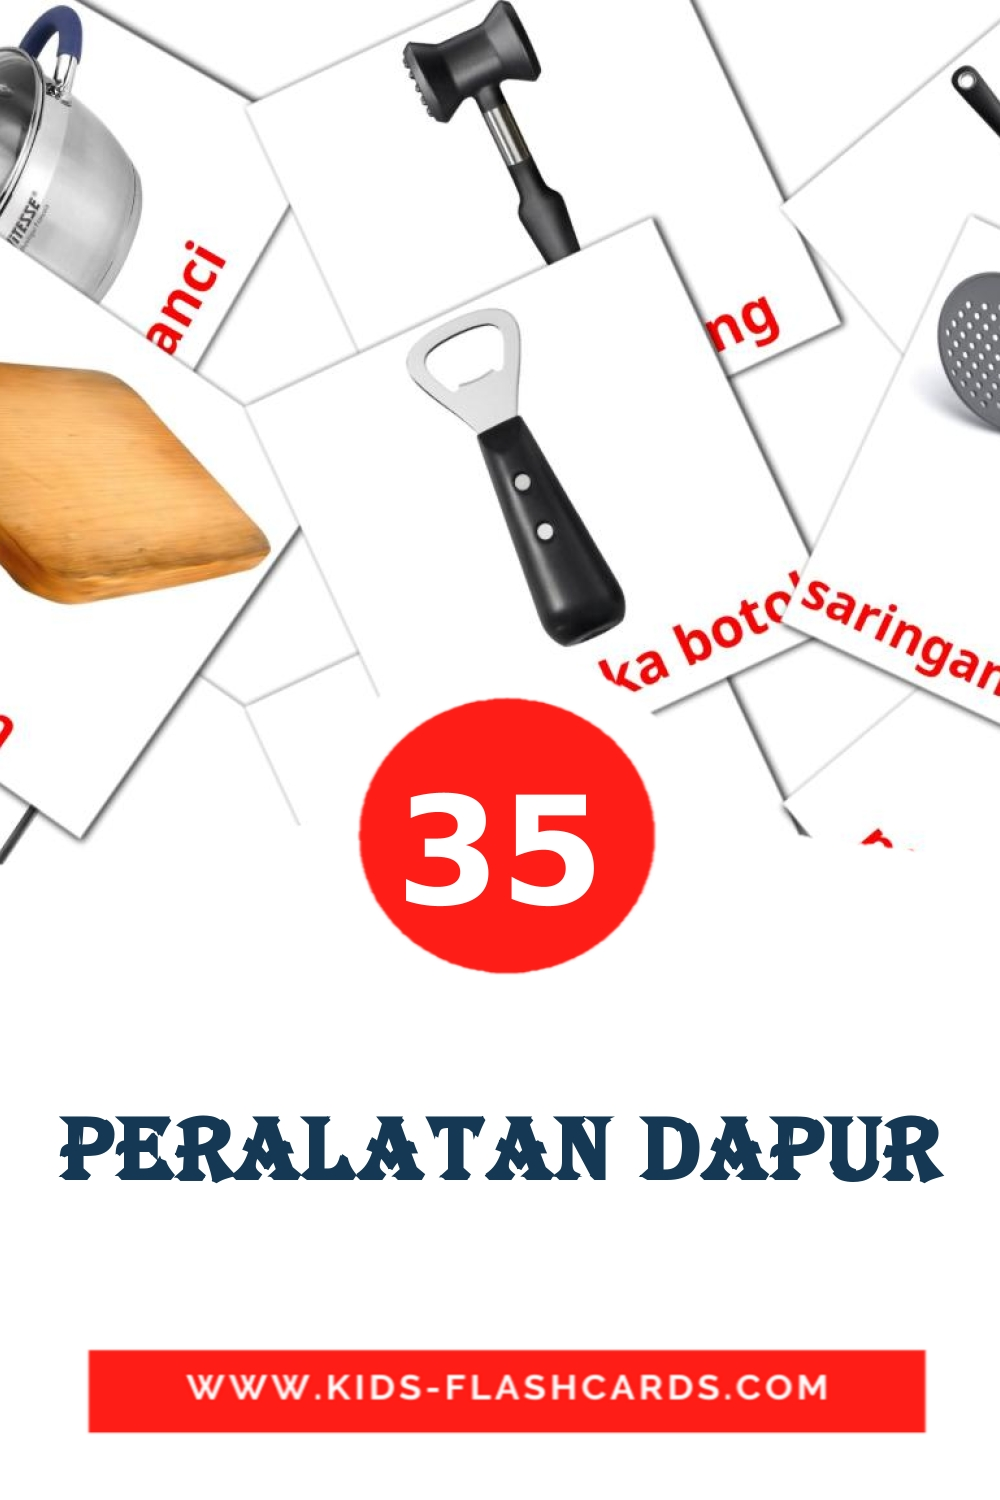 35 Peralatan Dapur Picture Cards for Kindergarden in indonesian